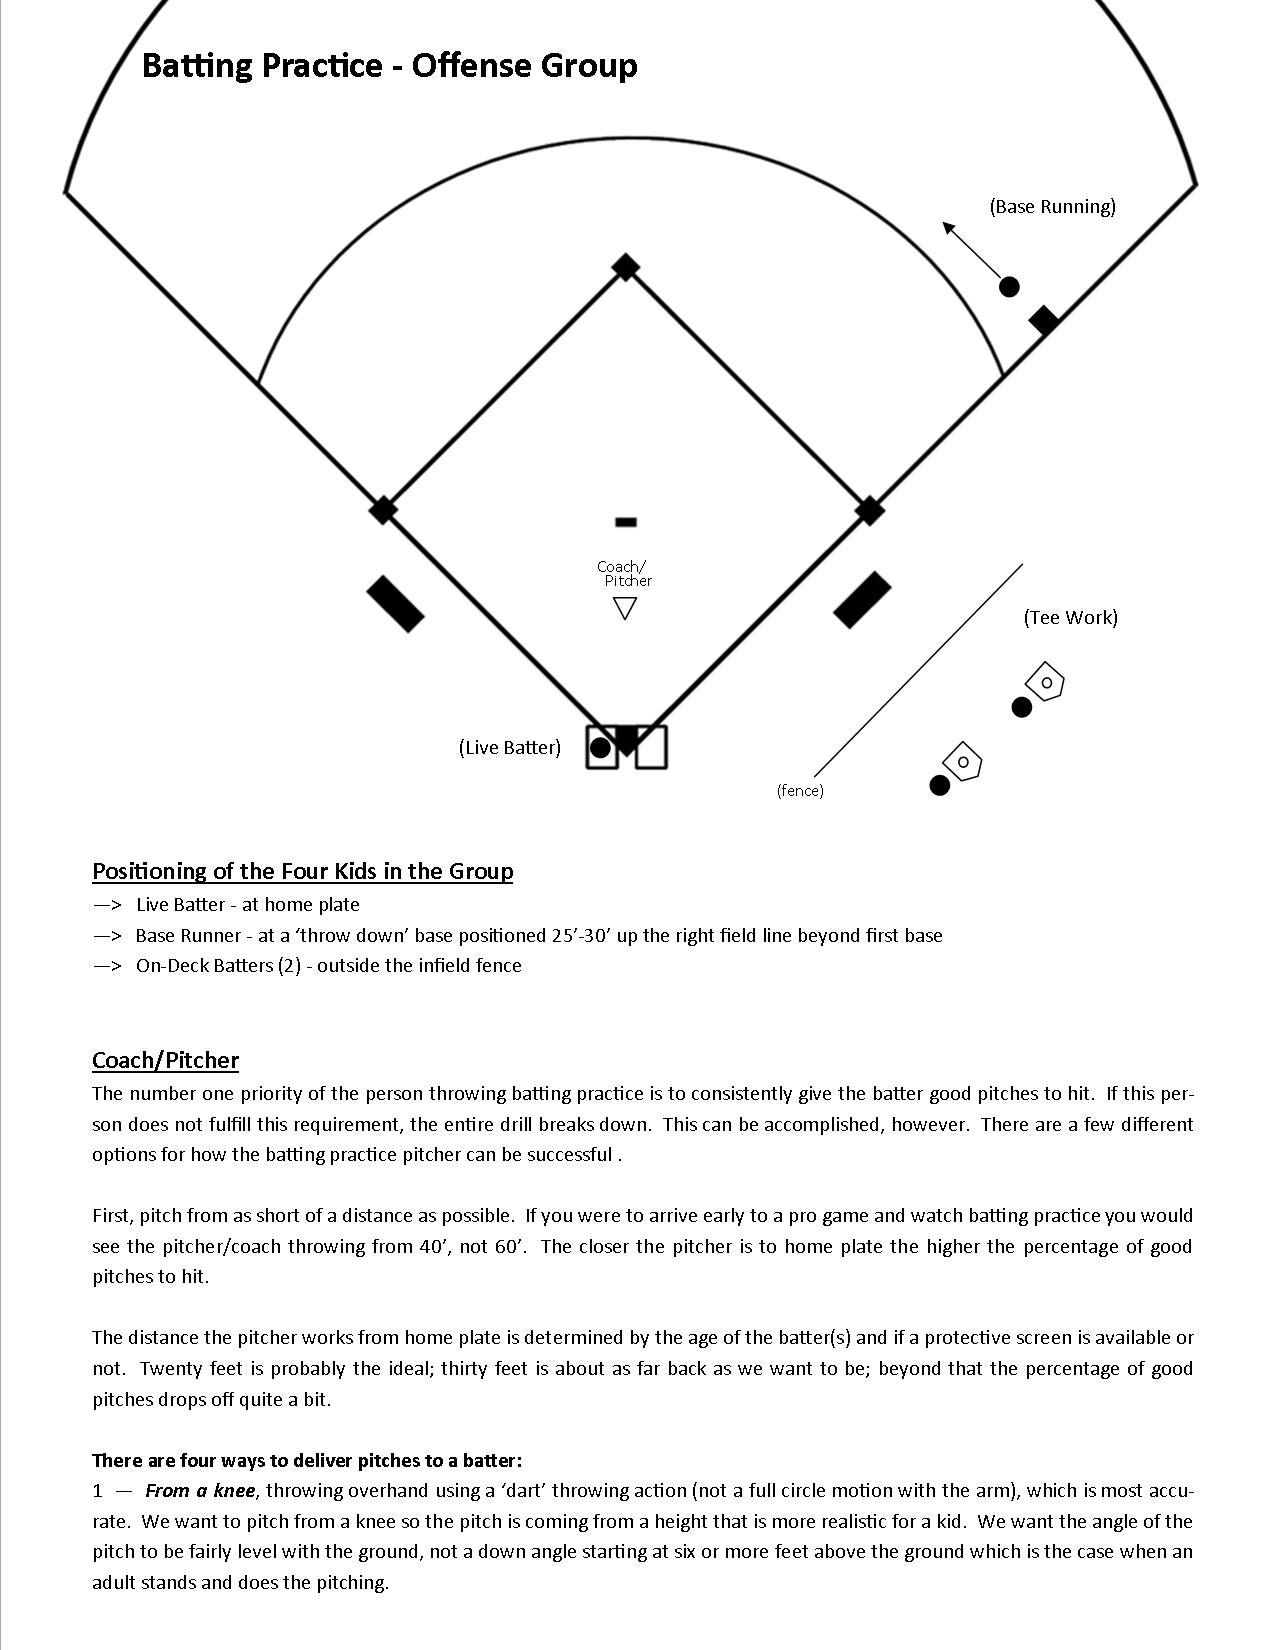 Batting Practice - Offense Group, Page 1 of 2.jpg